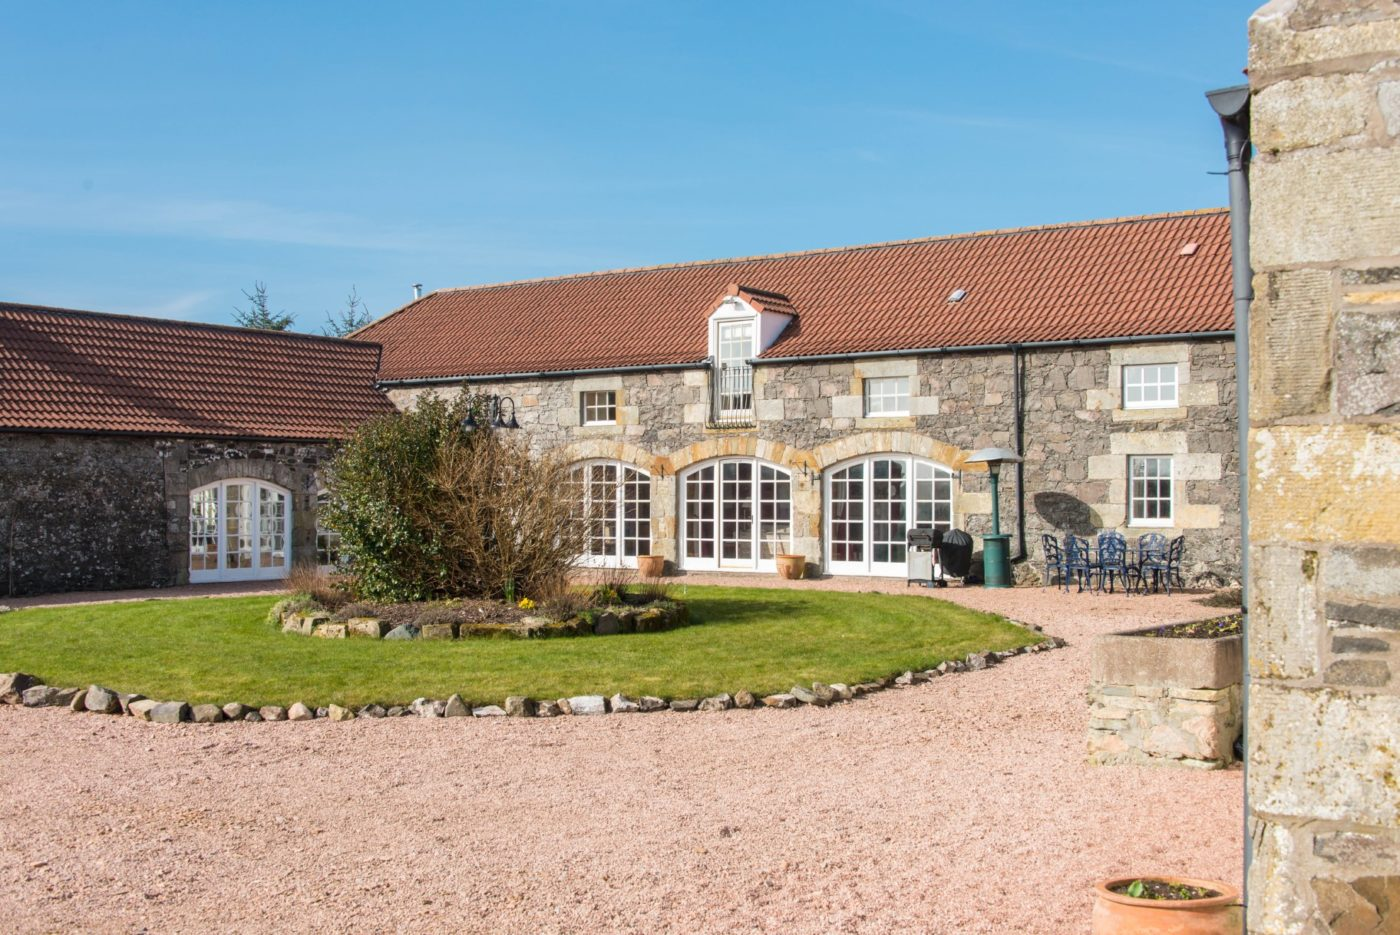 The Law Fife and Angus, House prices continue to rise in Fife and Angus - The Scotsman